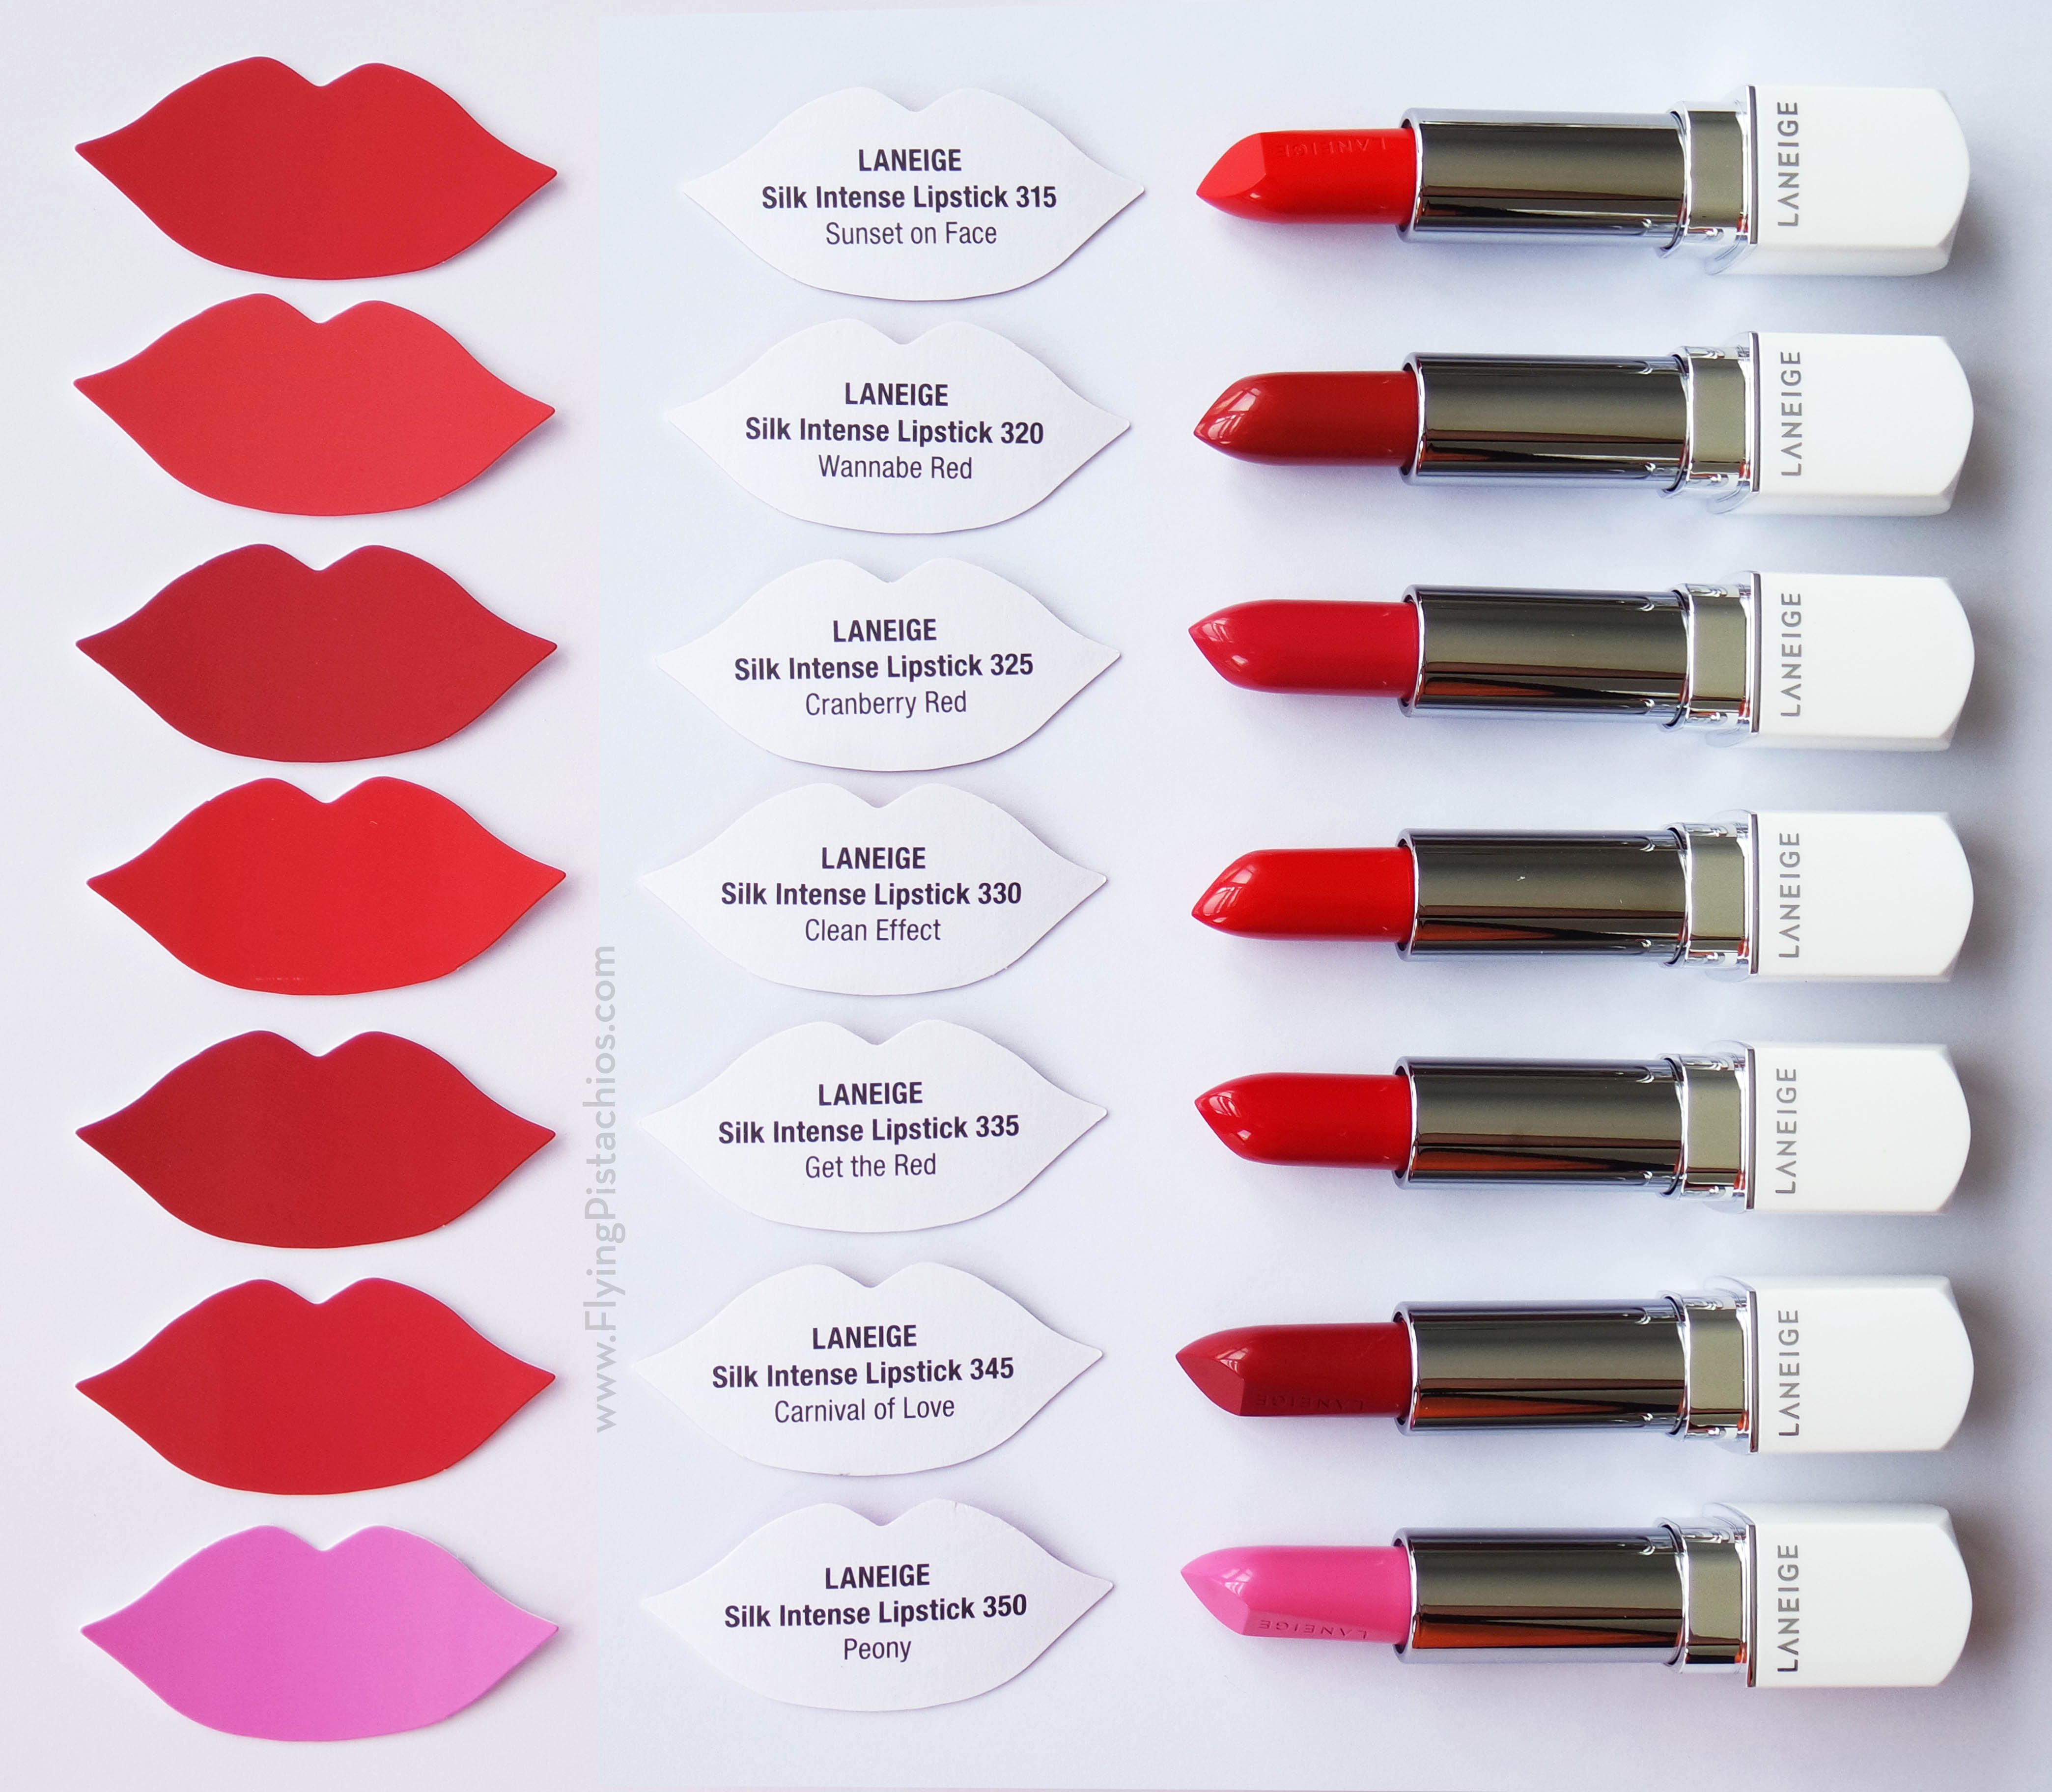 LANEIGE Silk Intense Lipstick Swatches (all 35 colours